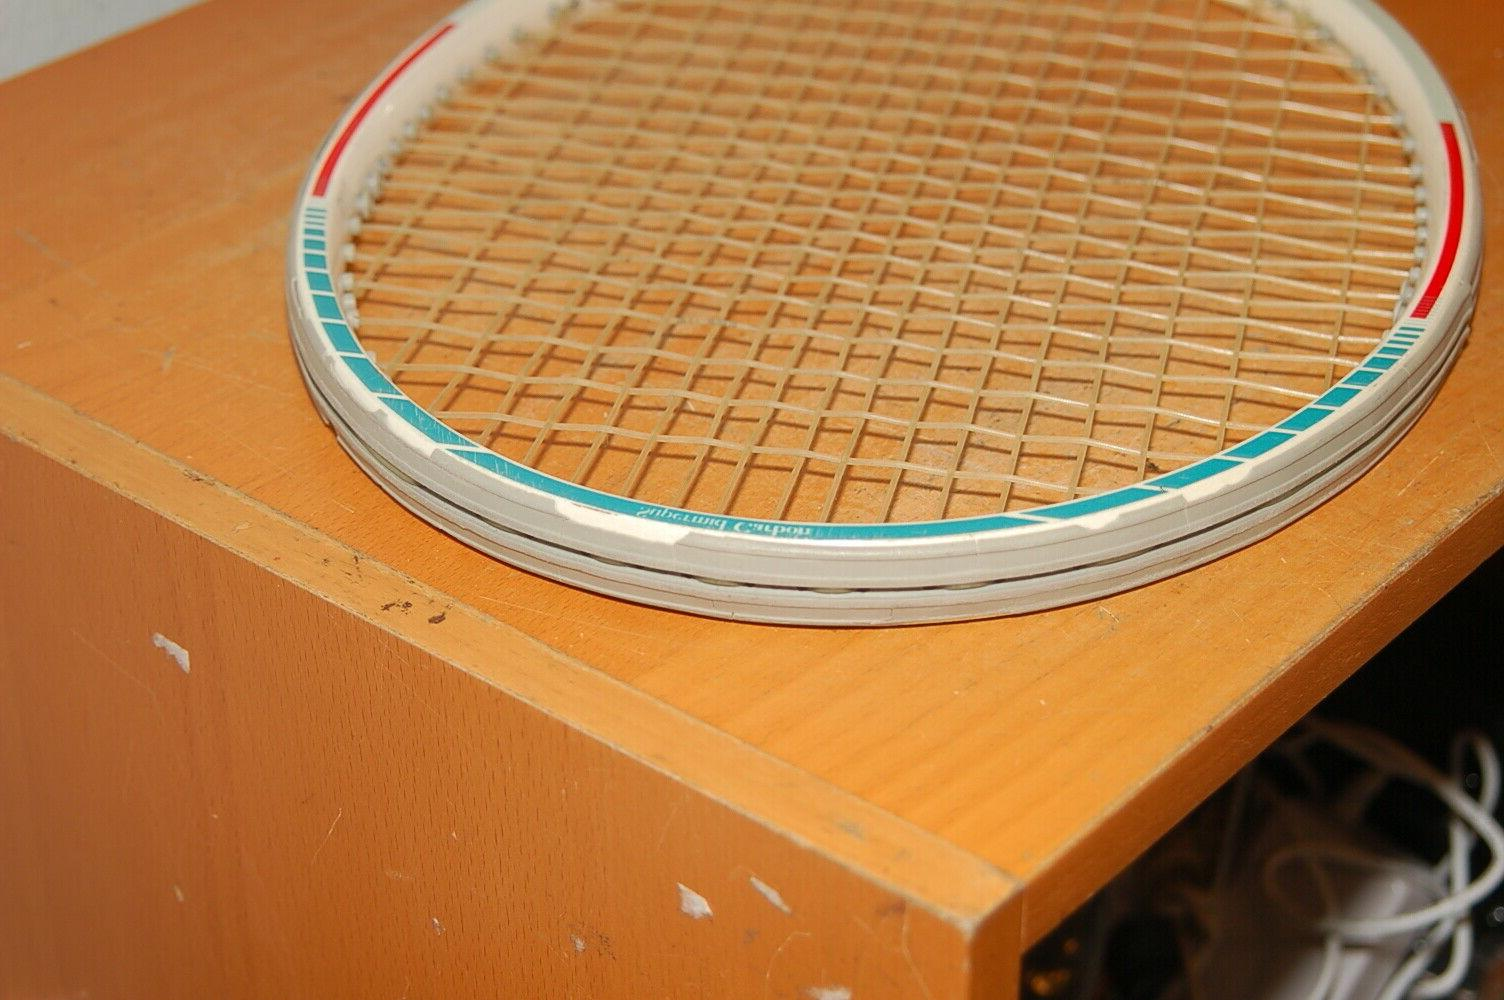 Donnay Racket